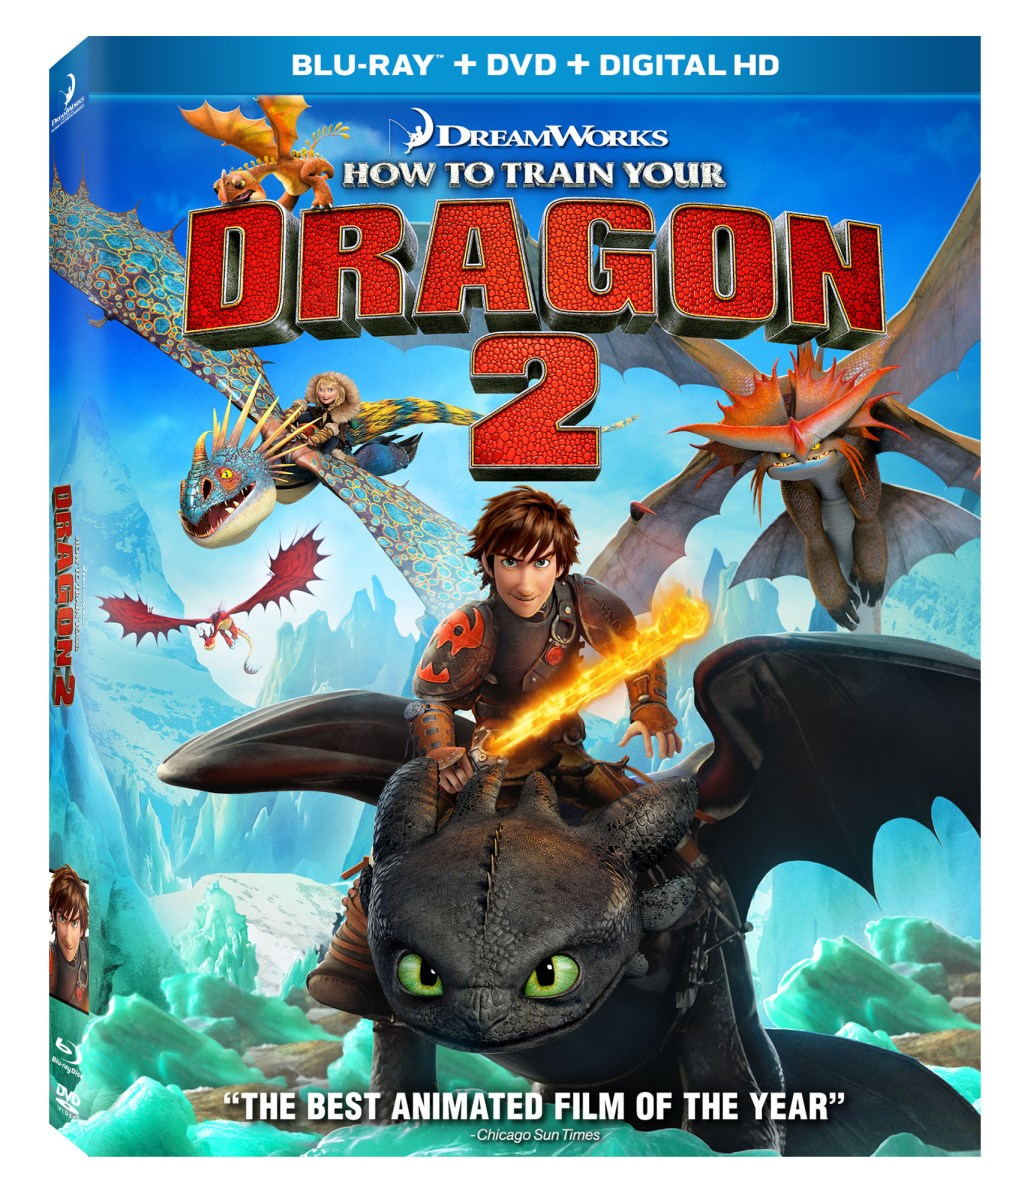 How to Train Your Dragon 2 Arrives Soon!